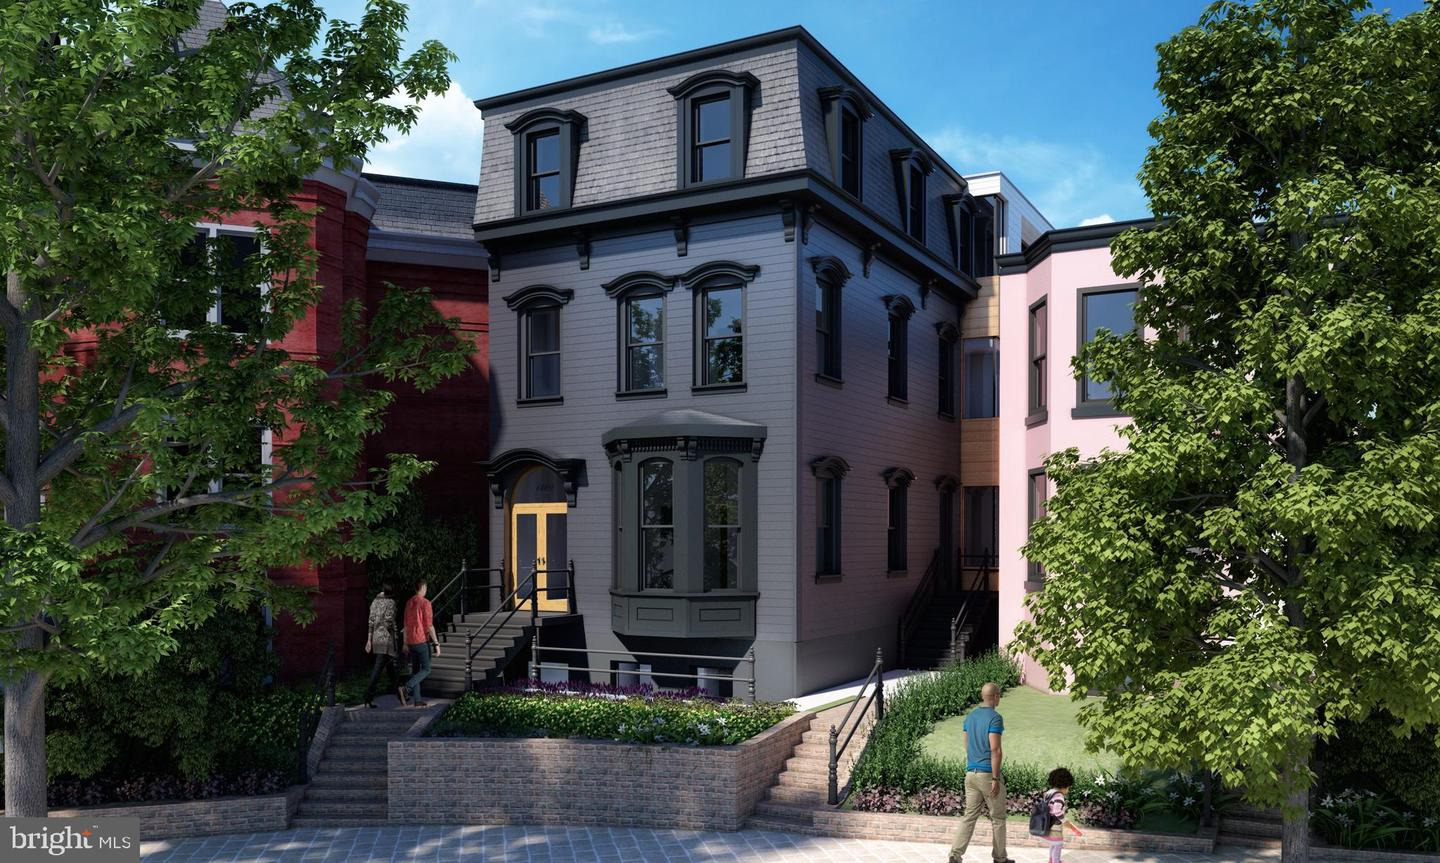 condominiums for Sale at 1469 Florida Ave NW #8 1469 Florida Ave NW #8 Washington, District Of Columbia 20009 United States